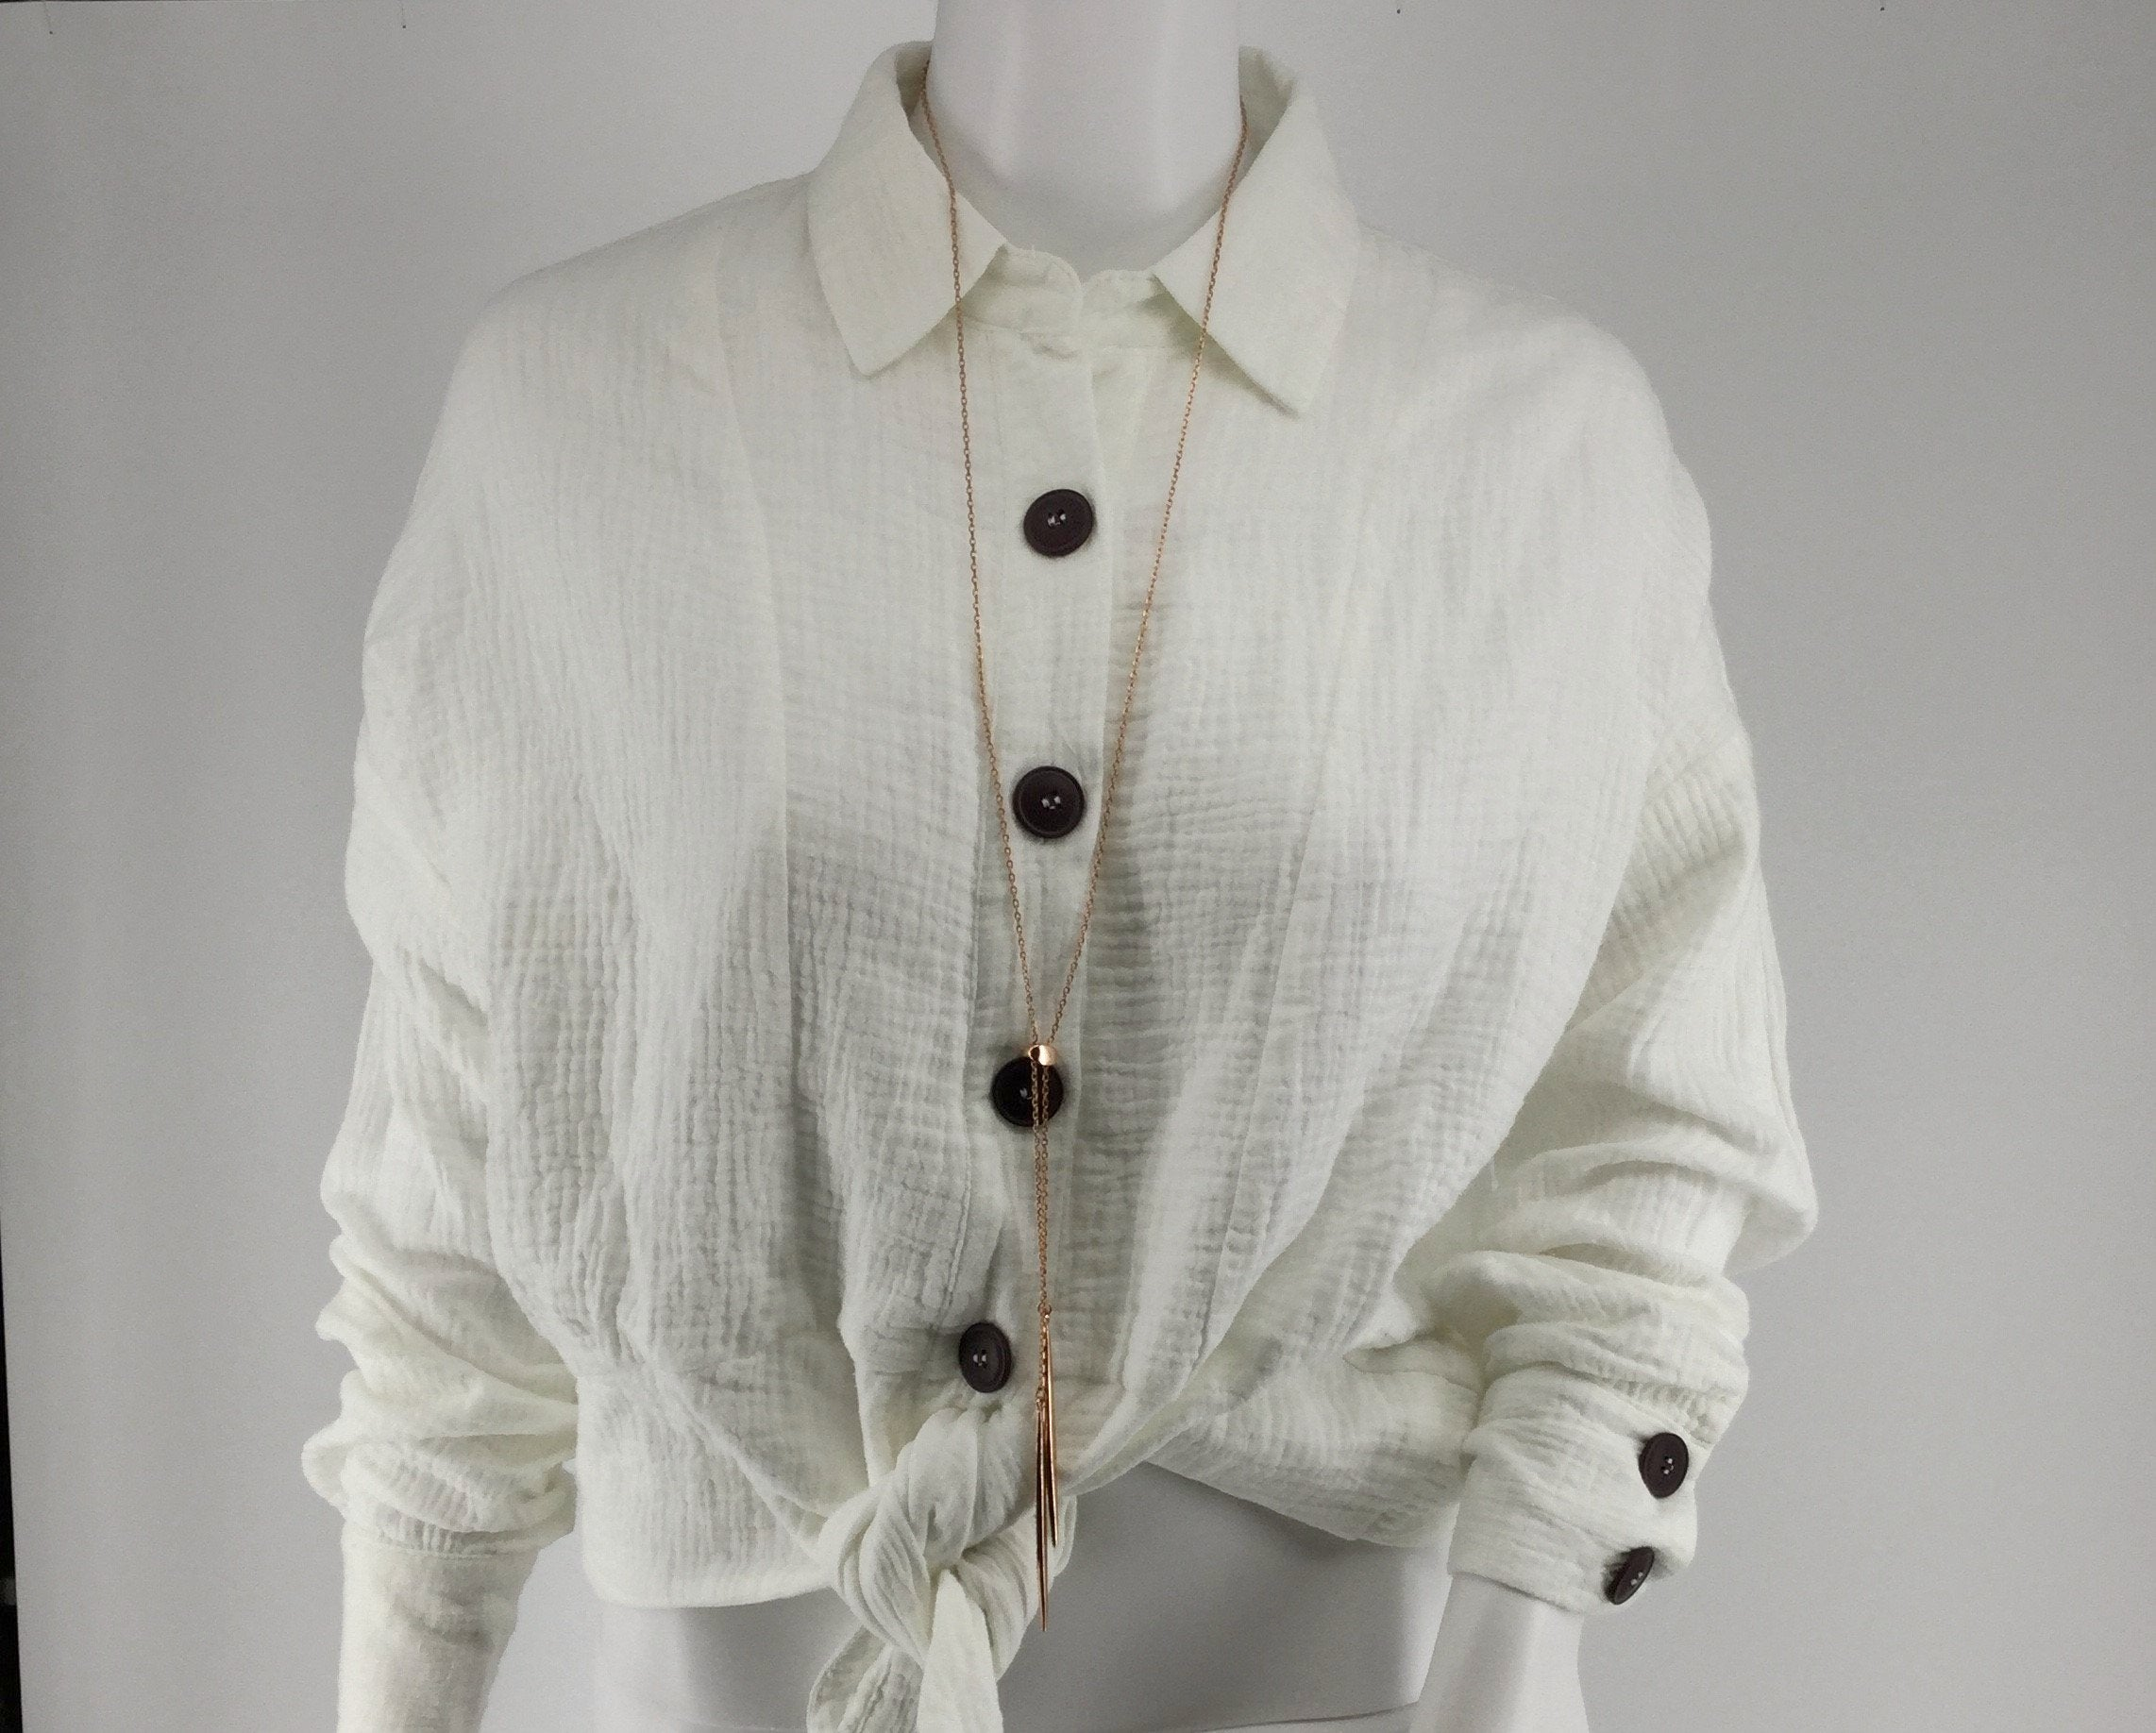 APPAREL,TOPS - FREE PEOPLE LONG SLEEVE TOP TEXTURED MATERIAL WITH A TIE DETAIL AT THE WAIST. BRIGHT WHITE TOP LENGTH WILL SIT AT THE WAIST.